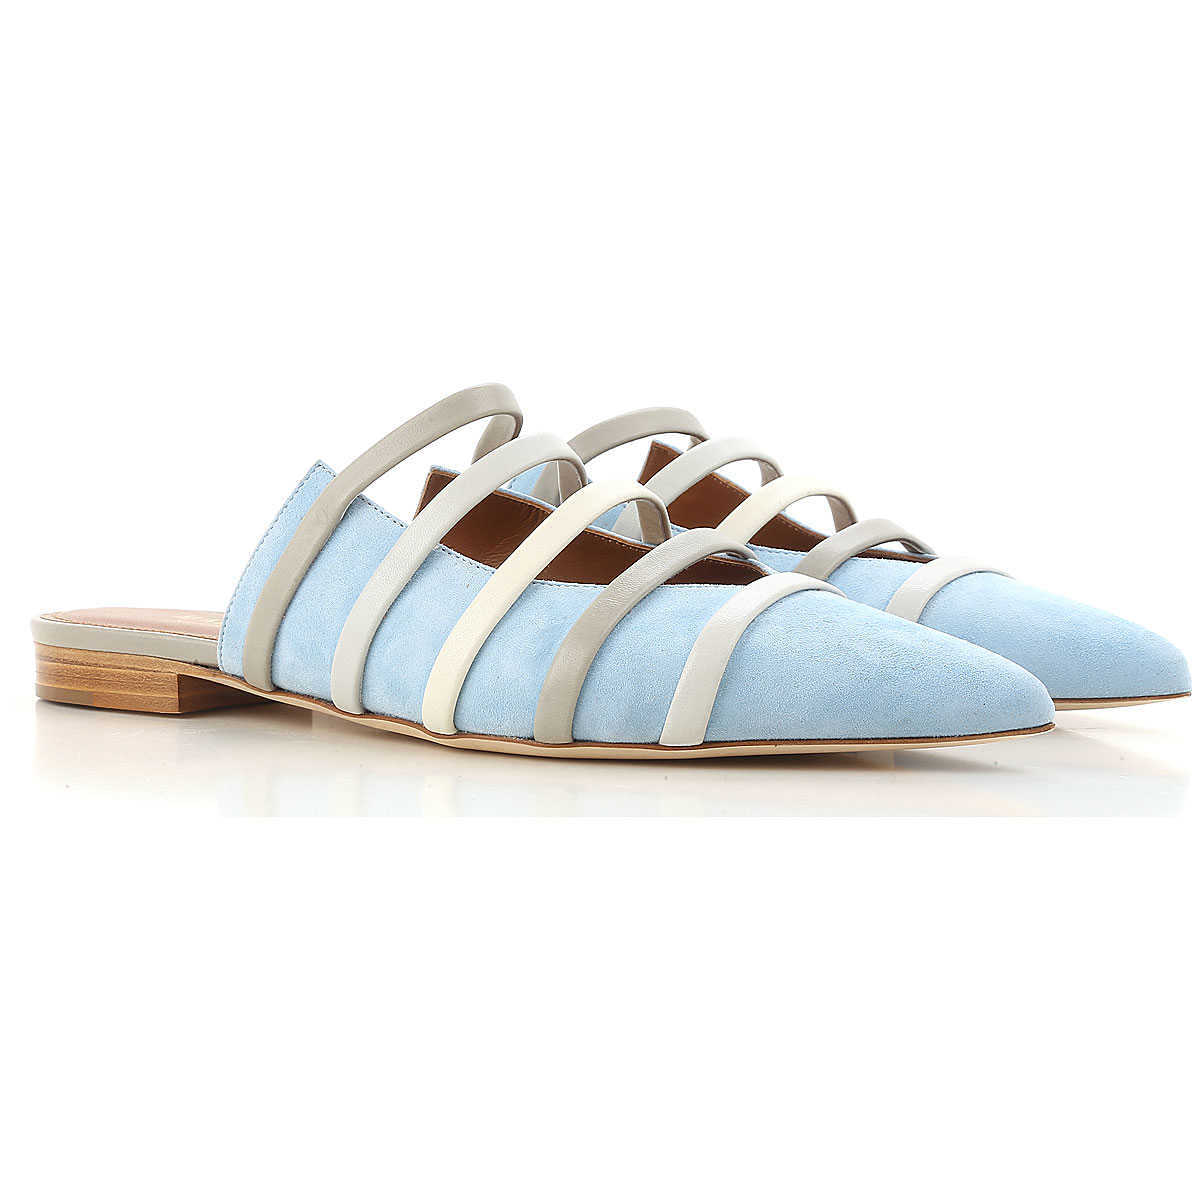 Malone Souliers Ballet Flats Ballerina Shoes for Women On Sale in Outlet Powder Blue - GOOFASH